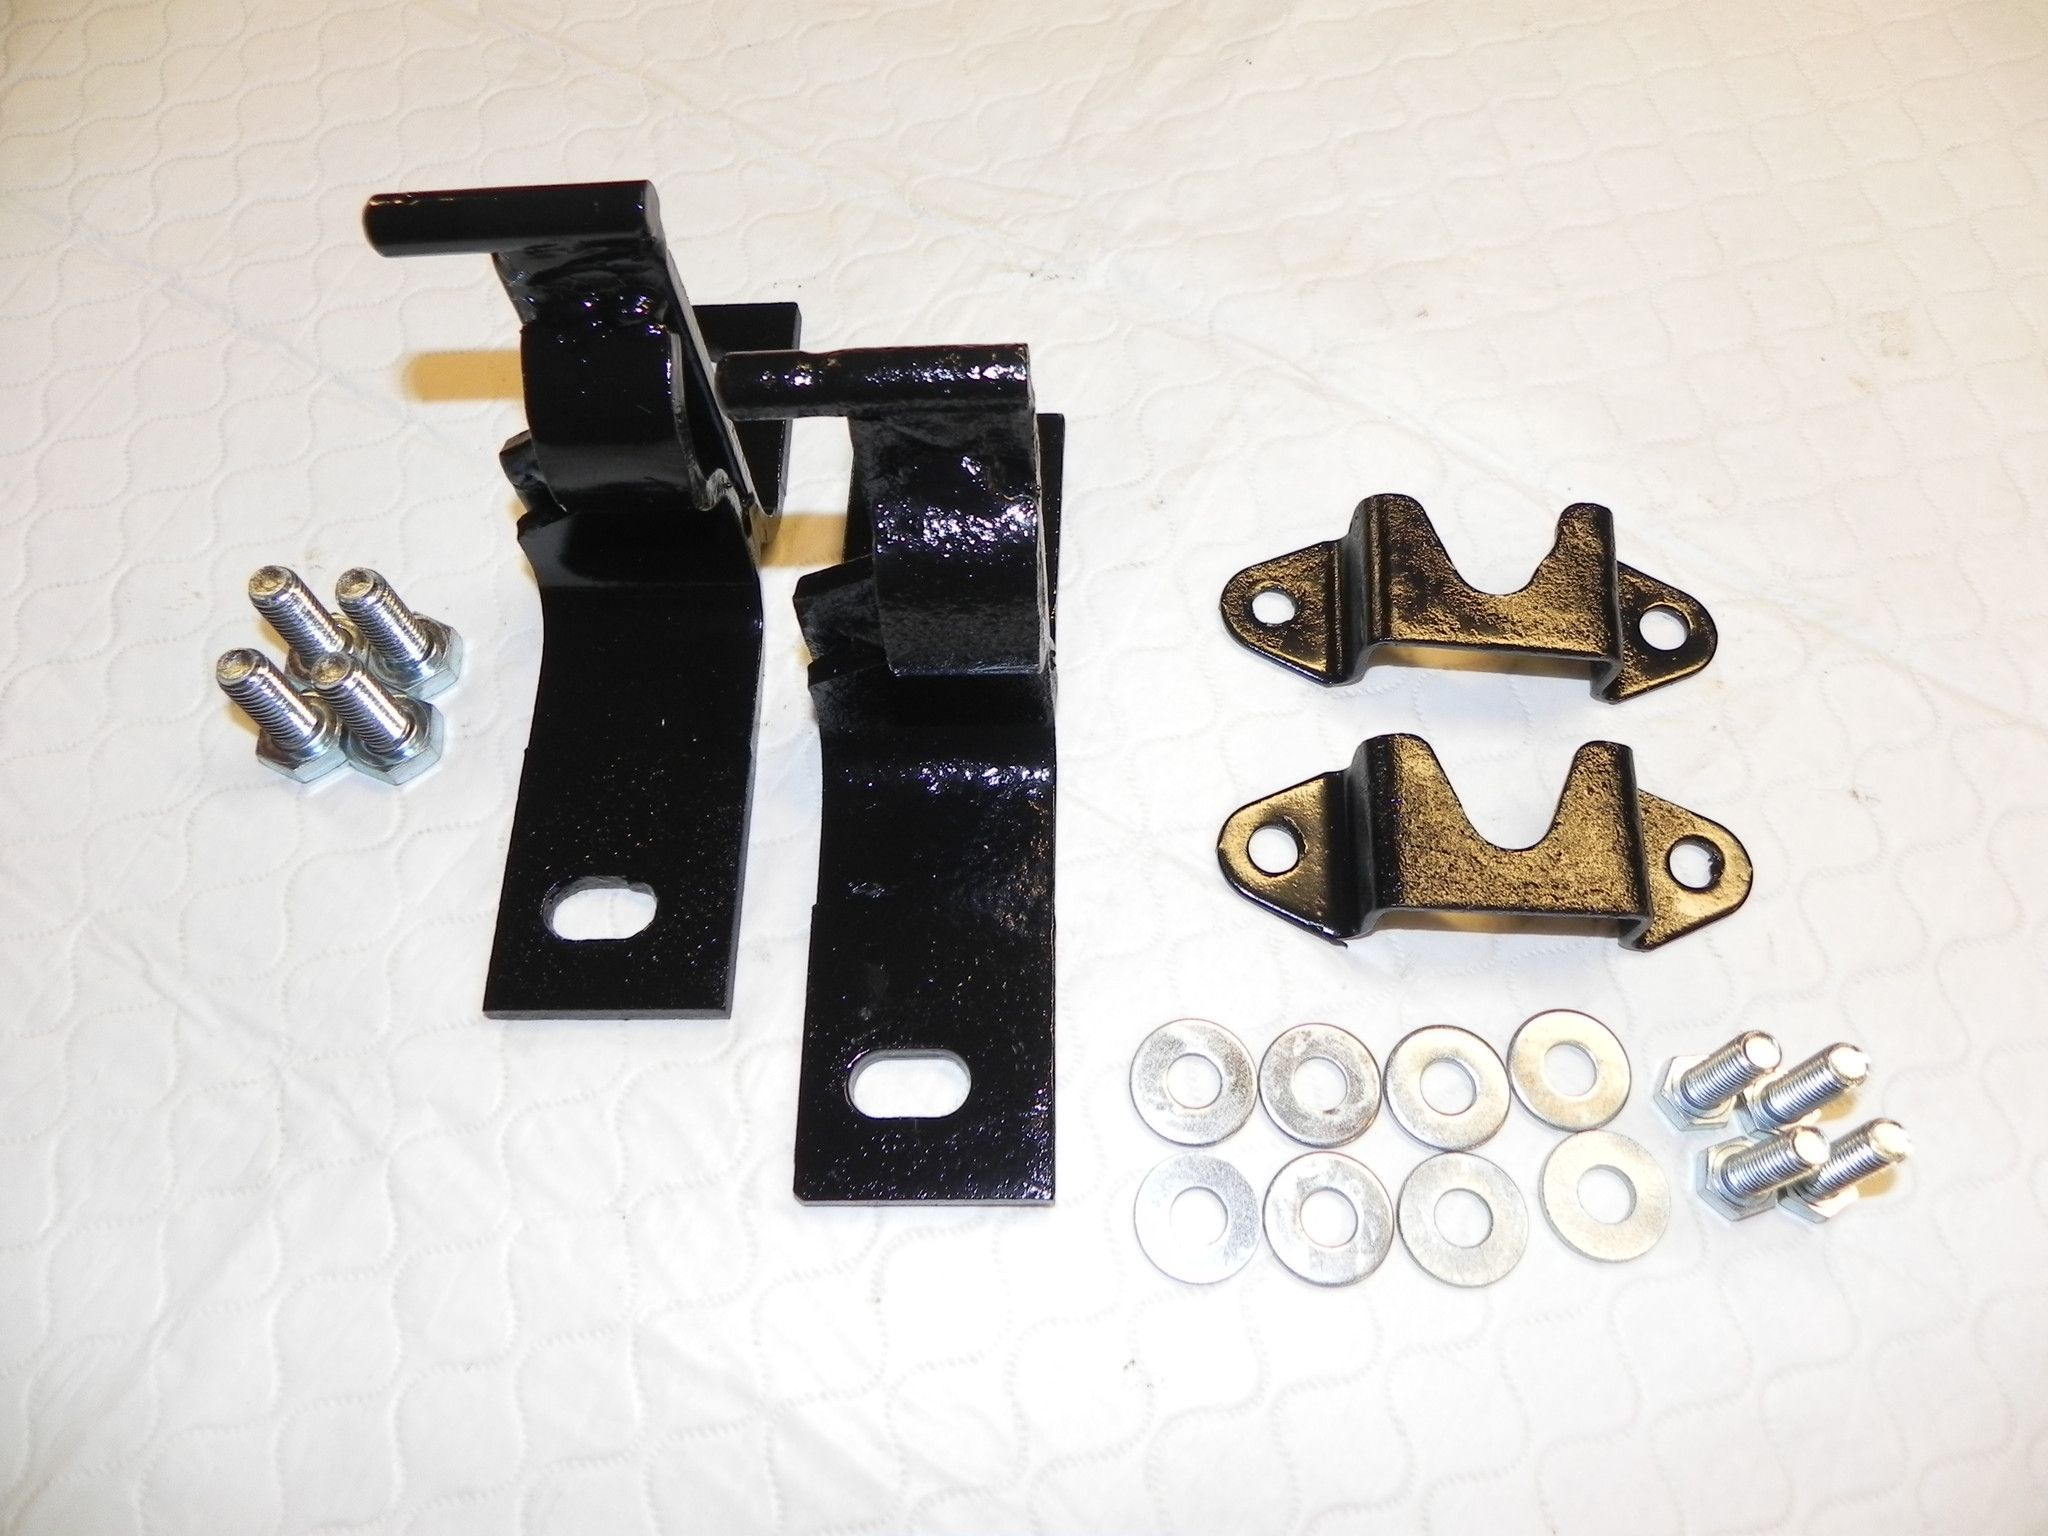 Jeep Wrangler Yj Rear Seat Brackets Fold And Tumble 87 95 Oem Jeep Wrangler Yj Rear Seat Jeep Wrangler